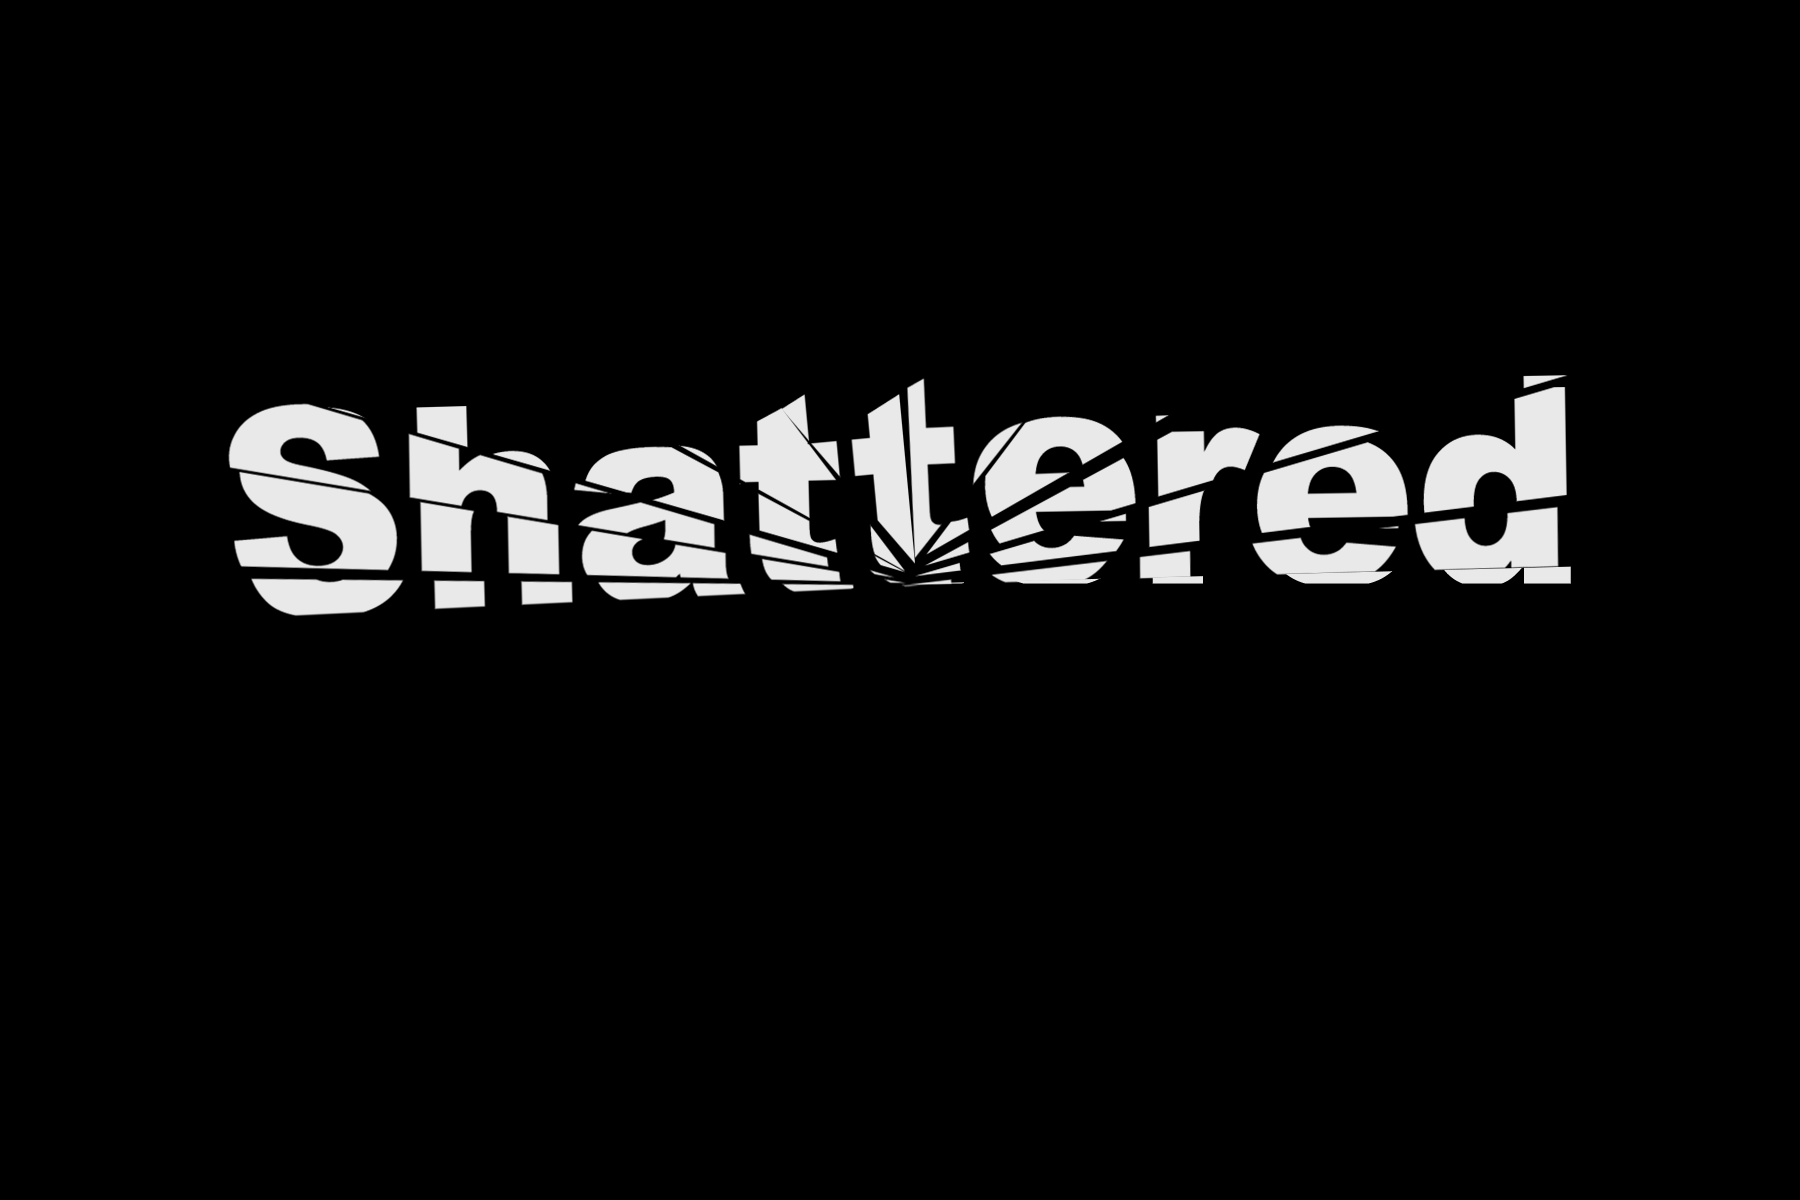 AterImber.com - Writing - Writing Tips - PHSH Tutorial Series - Shattered Text - Shattered Text Effect Done - phsh, phsh tutorial, photoshop, photoshop tutorial, phsh effect